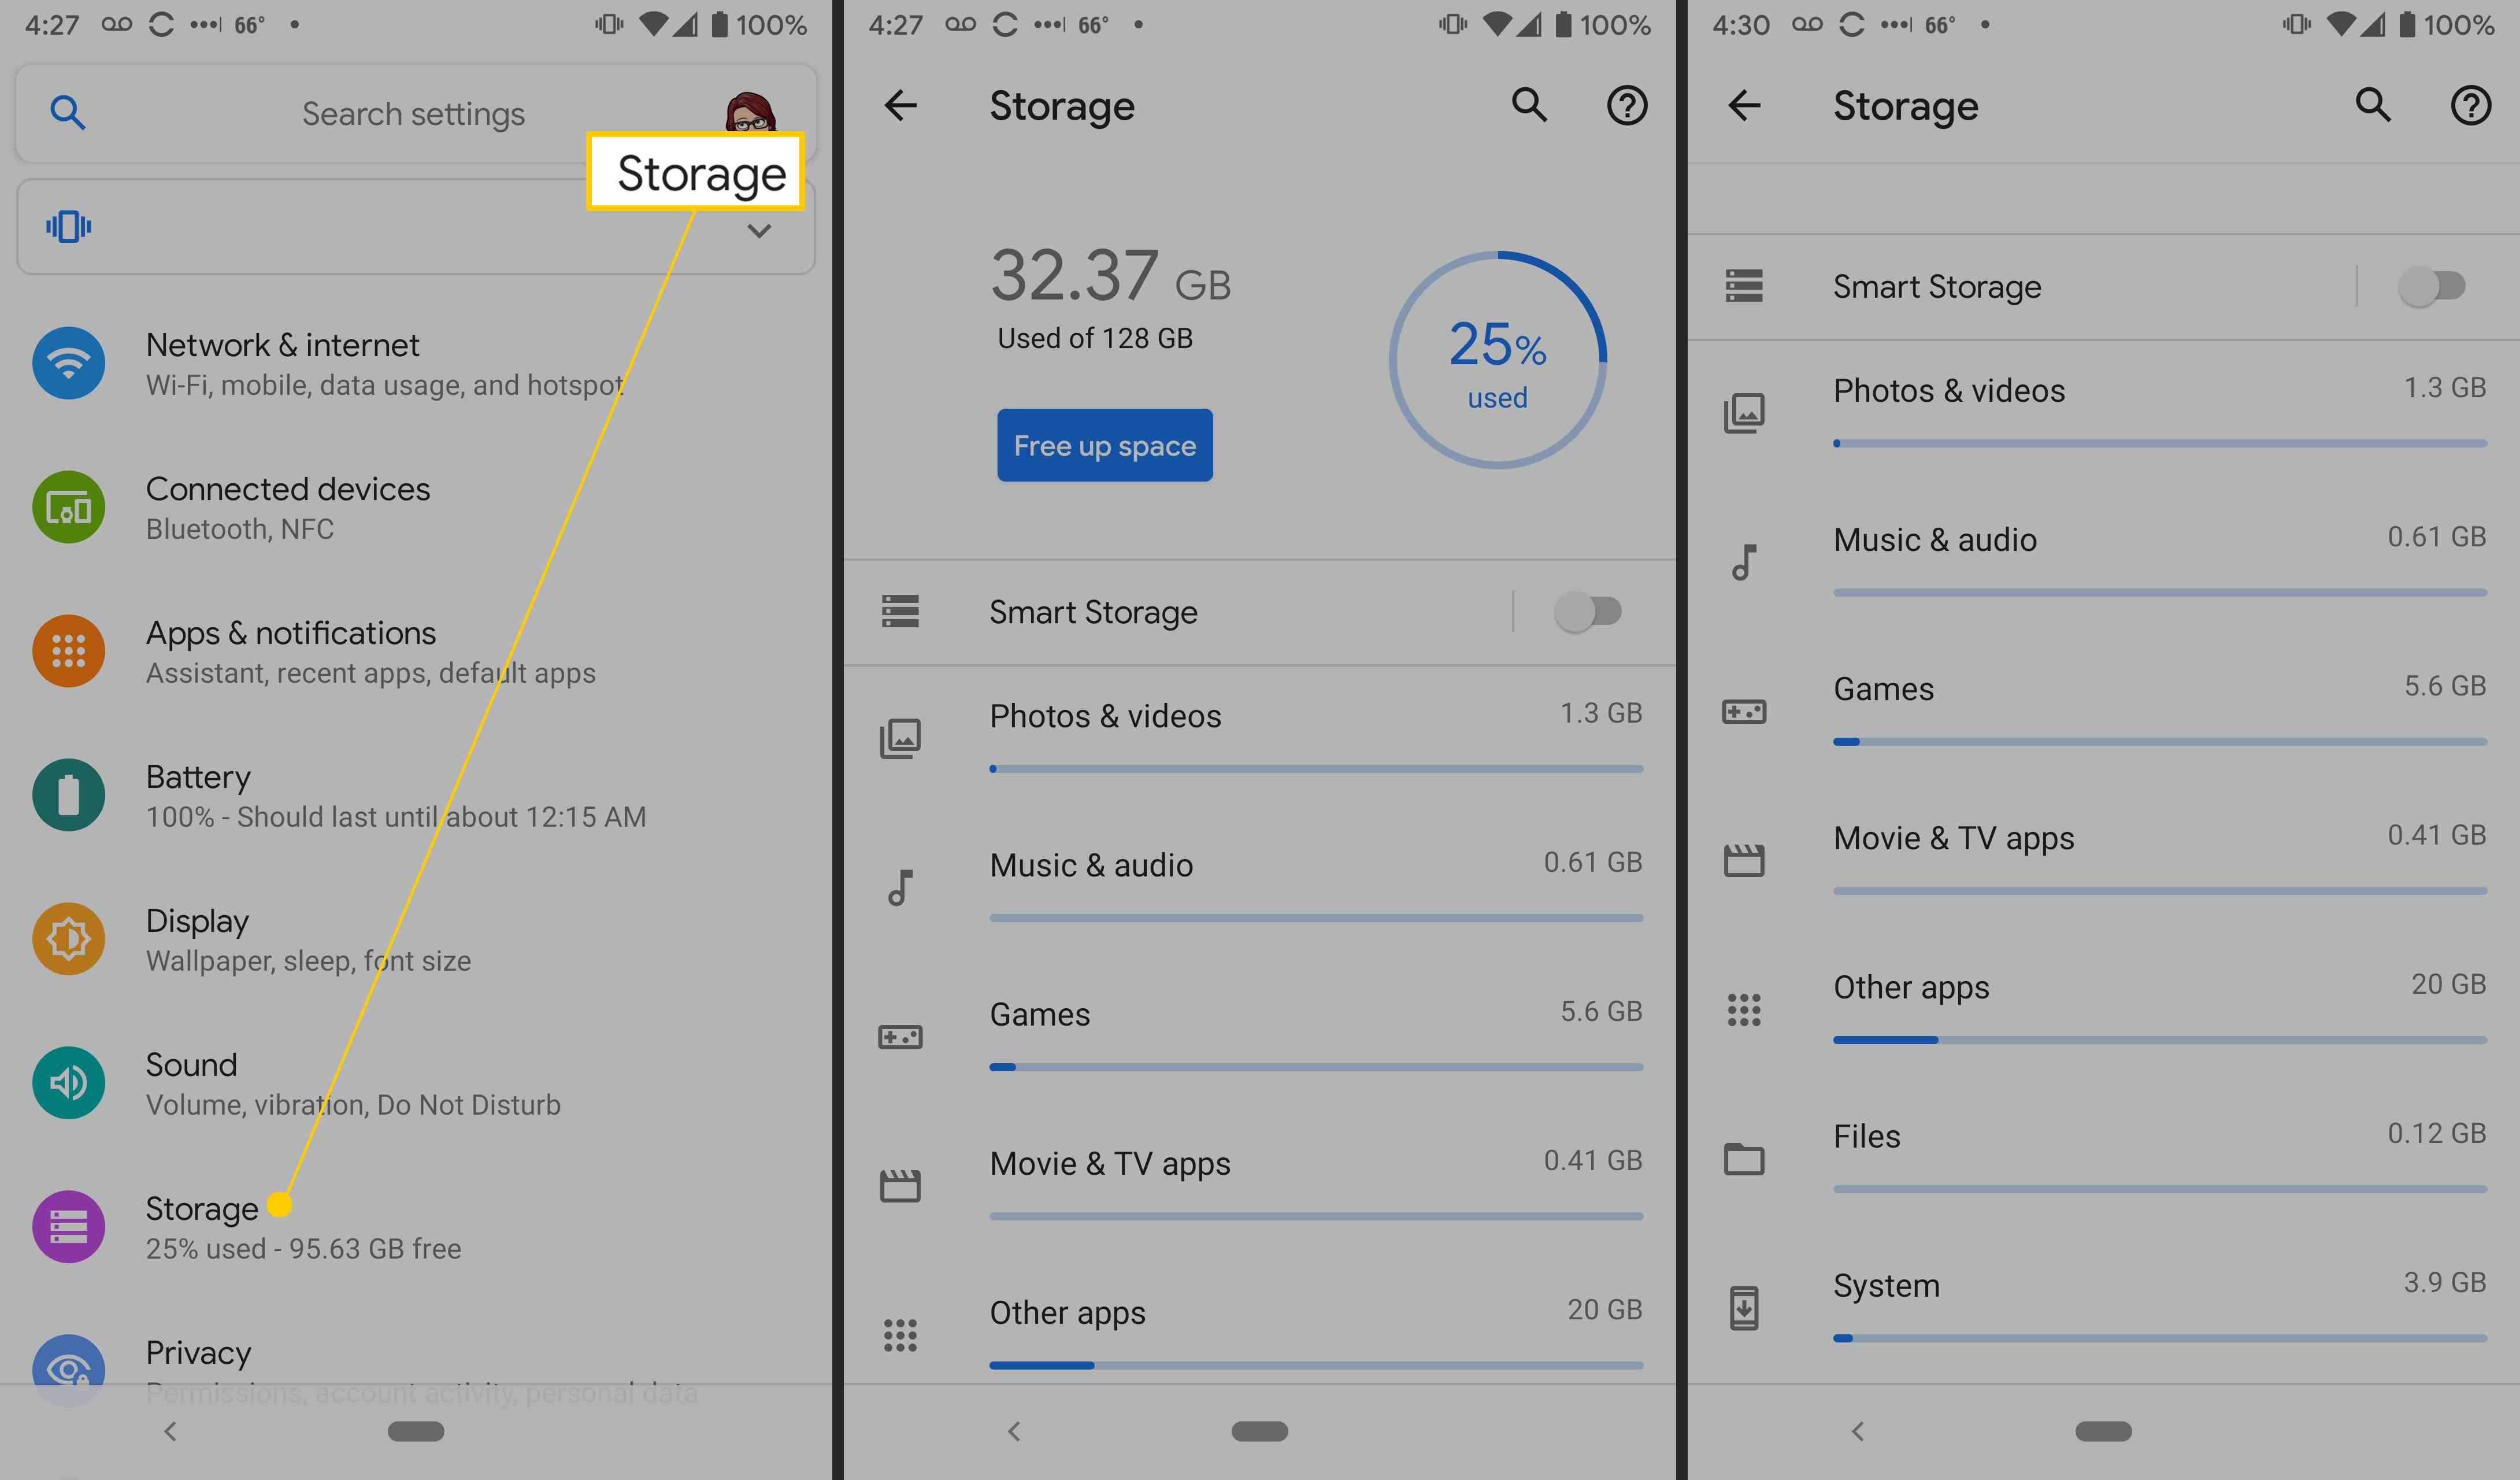 Android storage settings.